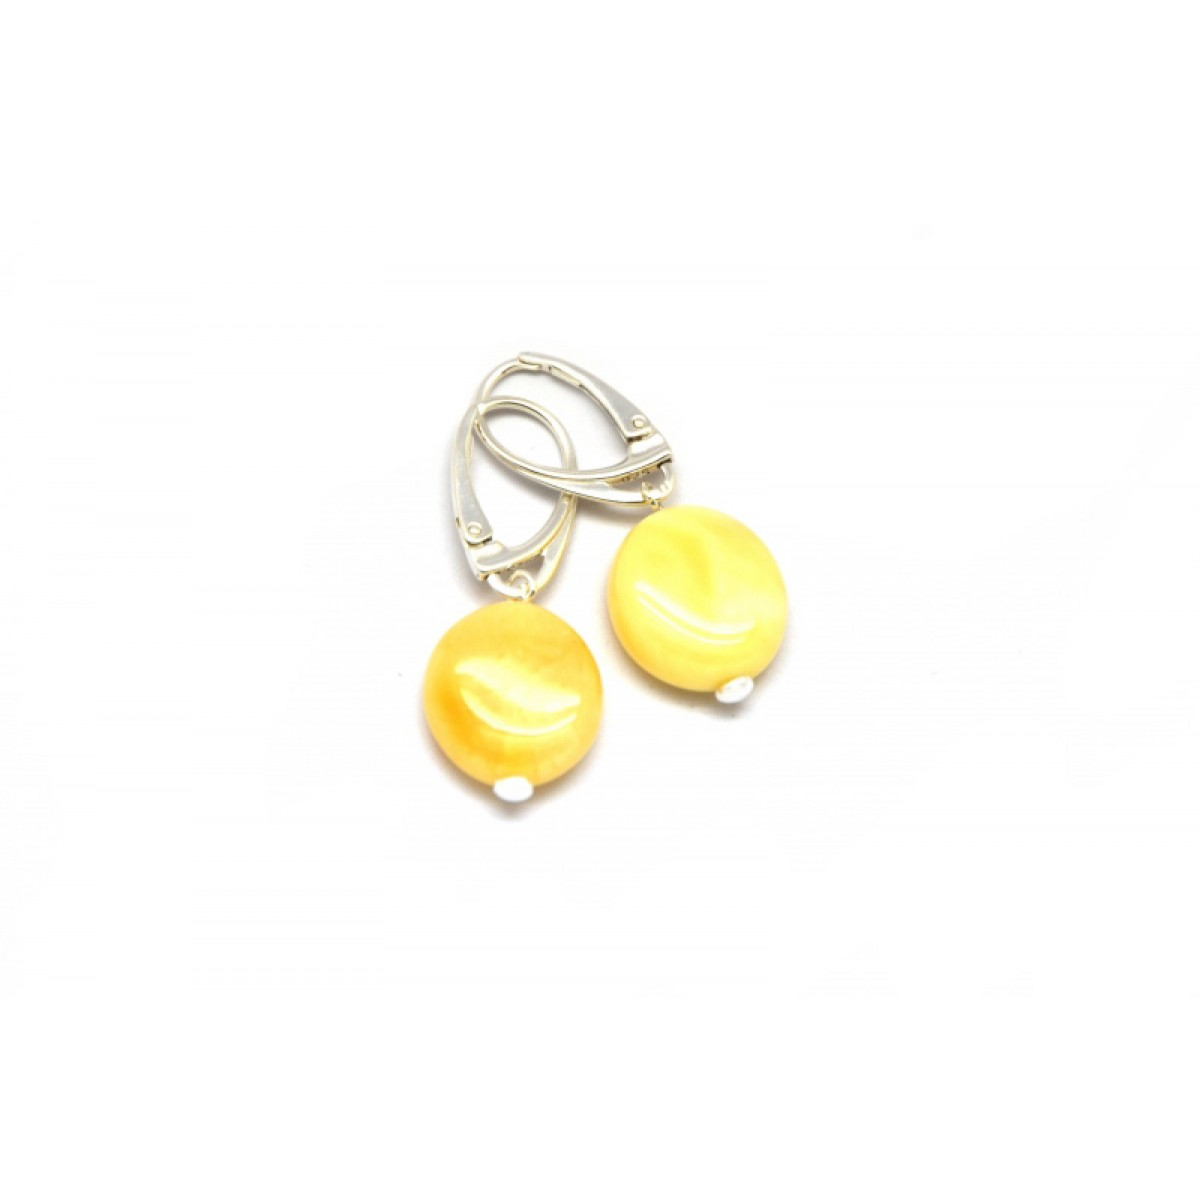 Round button shape yellow Baltic amber earrings